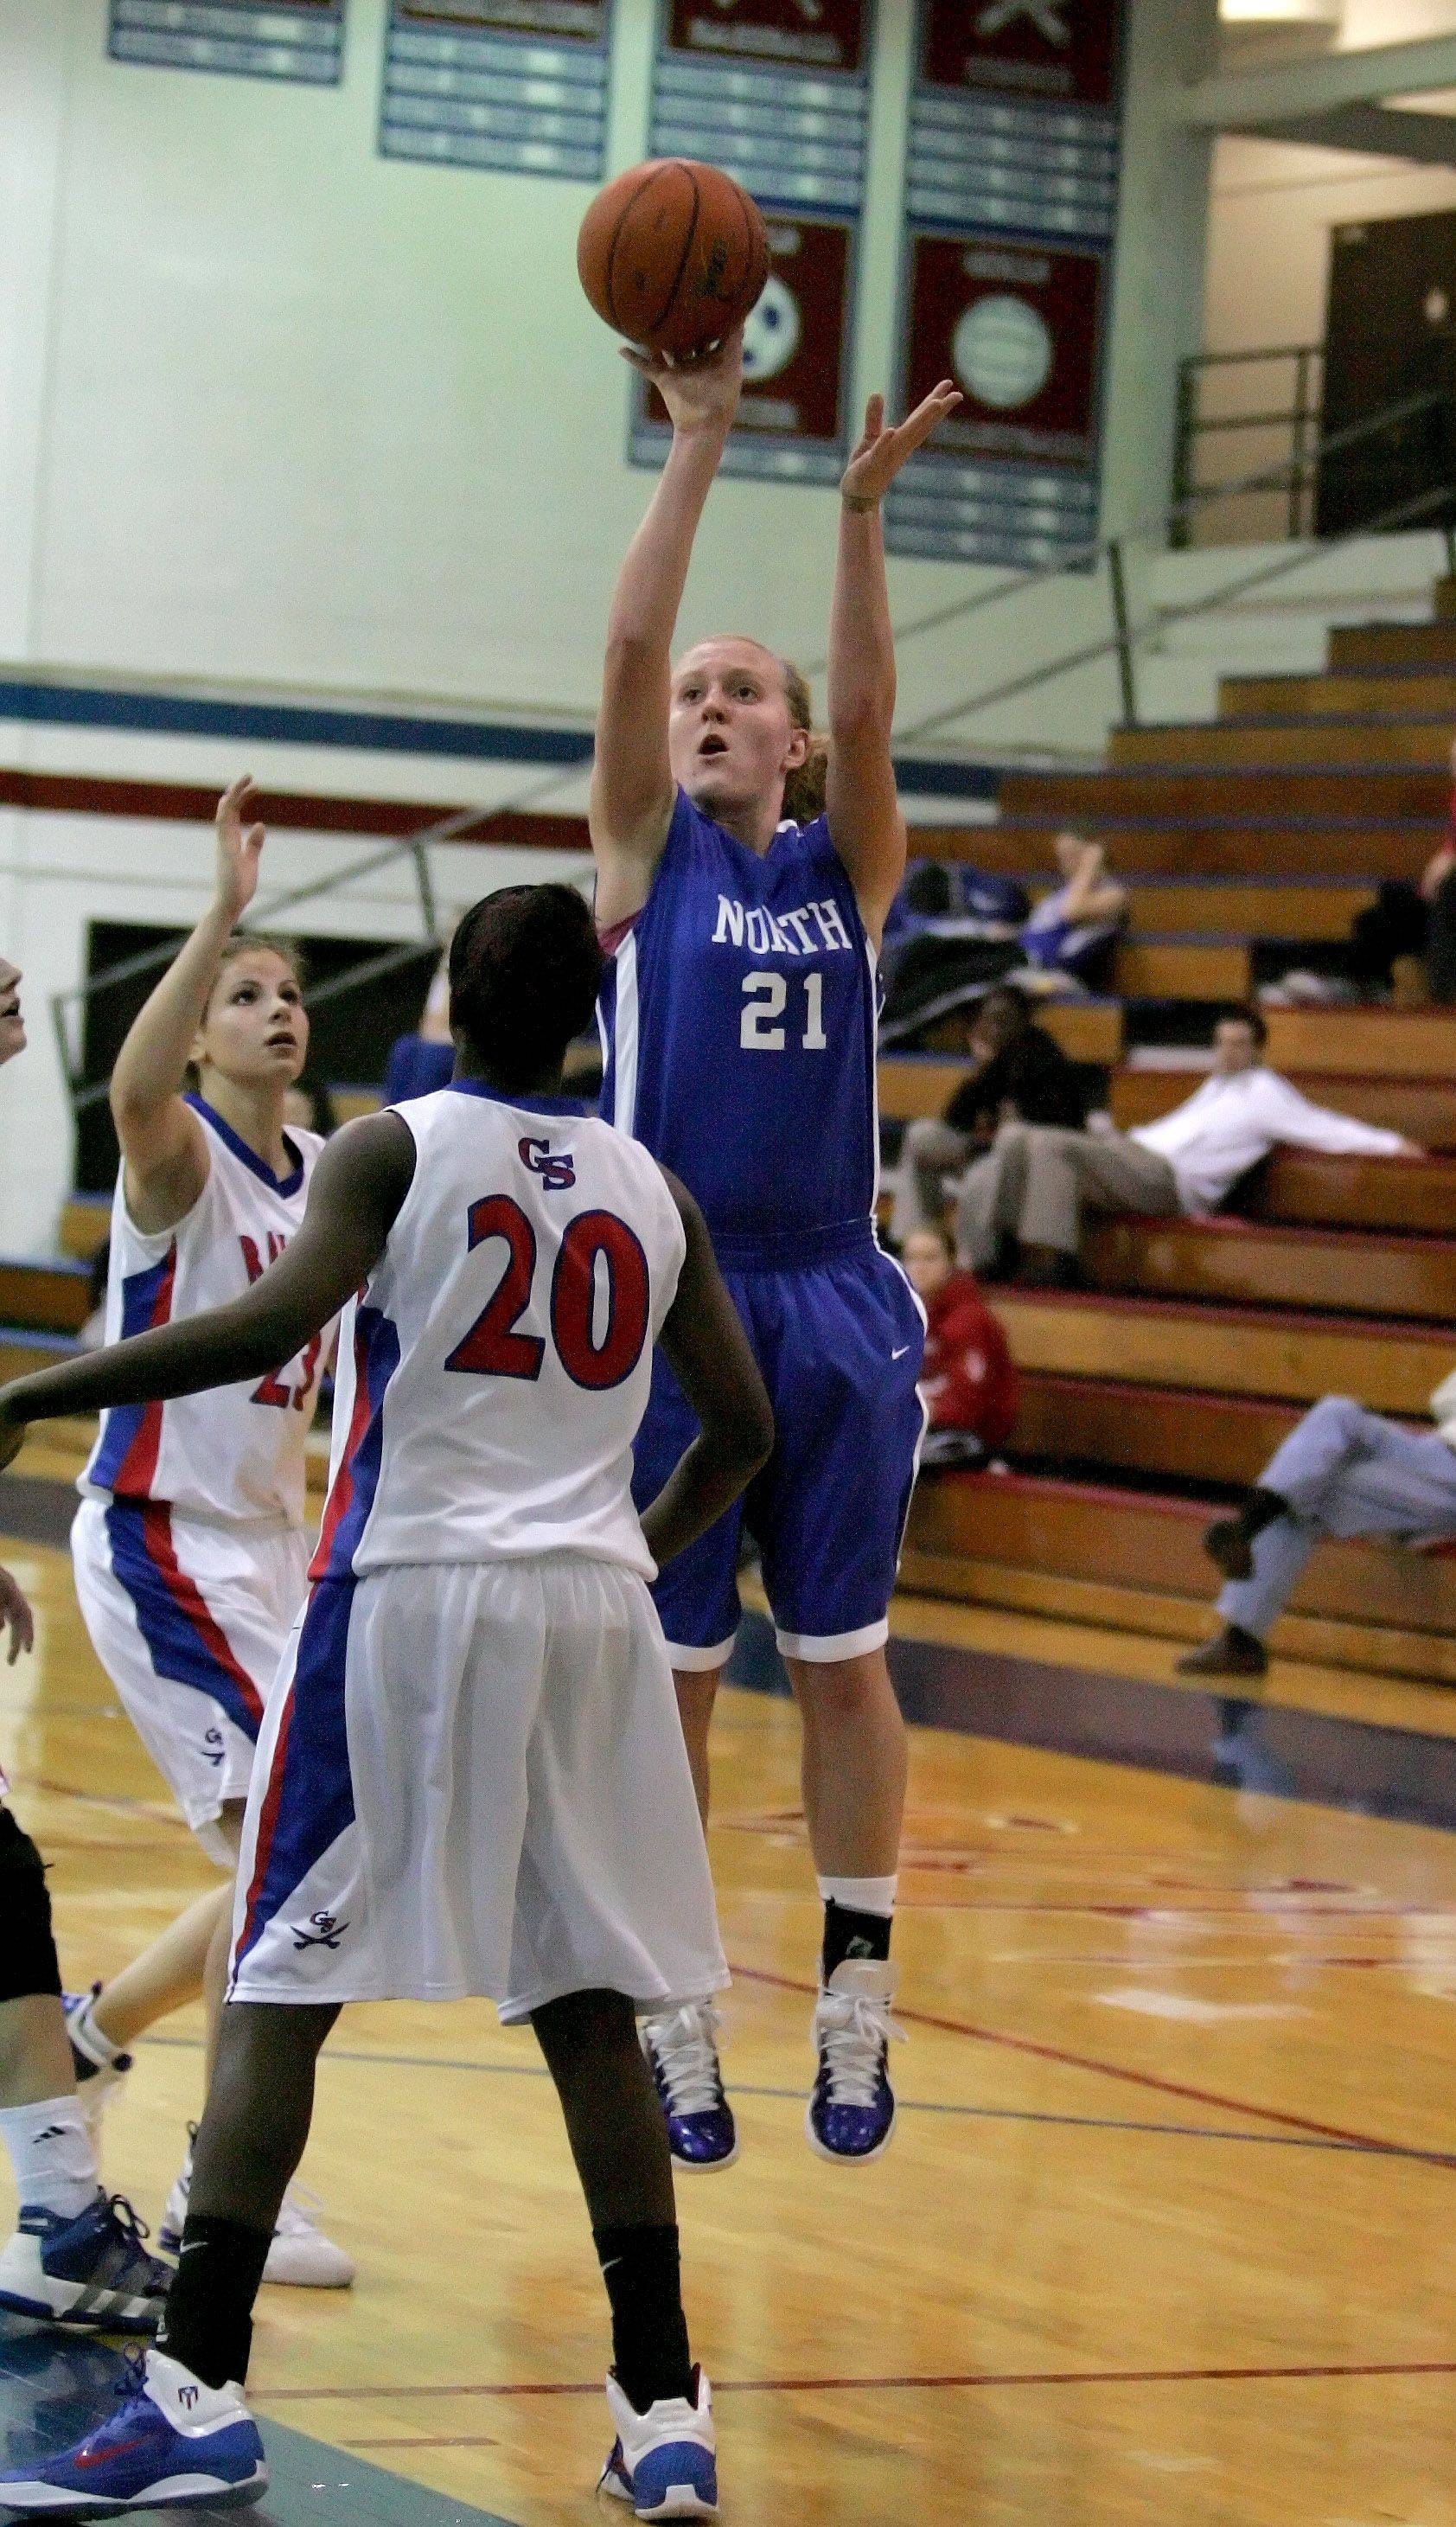 Lauren Graham of Wheaton North makes a shot over Patrice Hicks of Glenbard South.